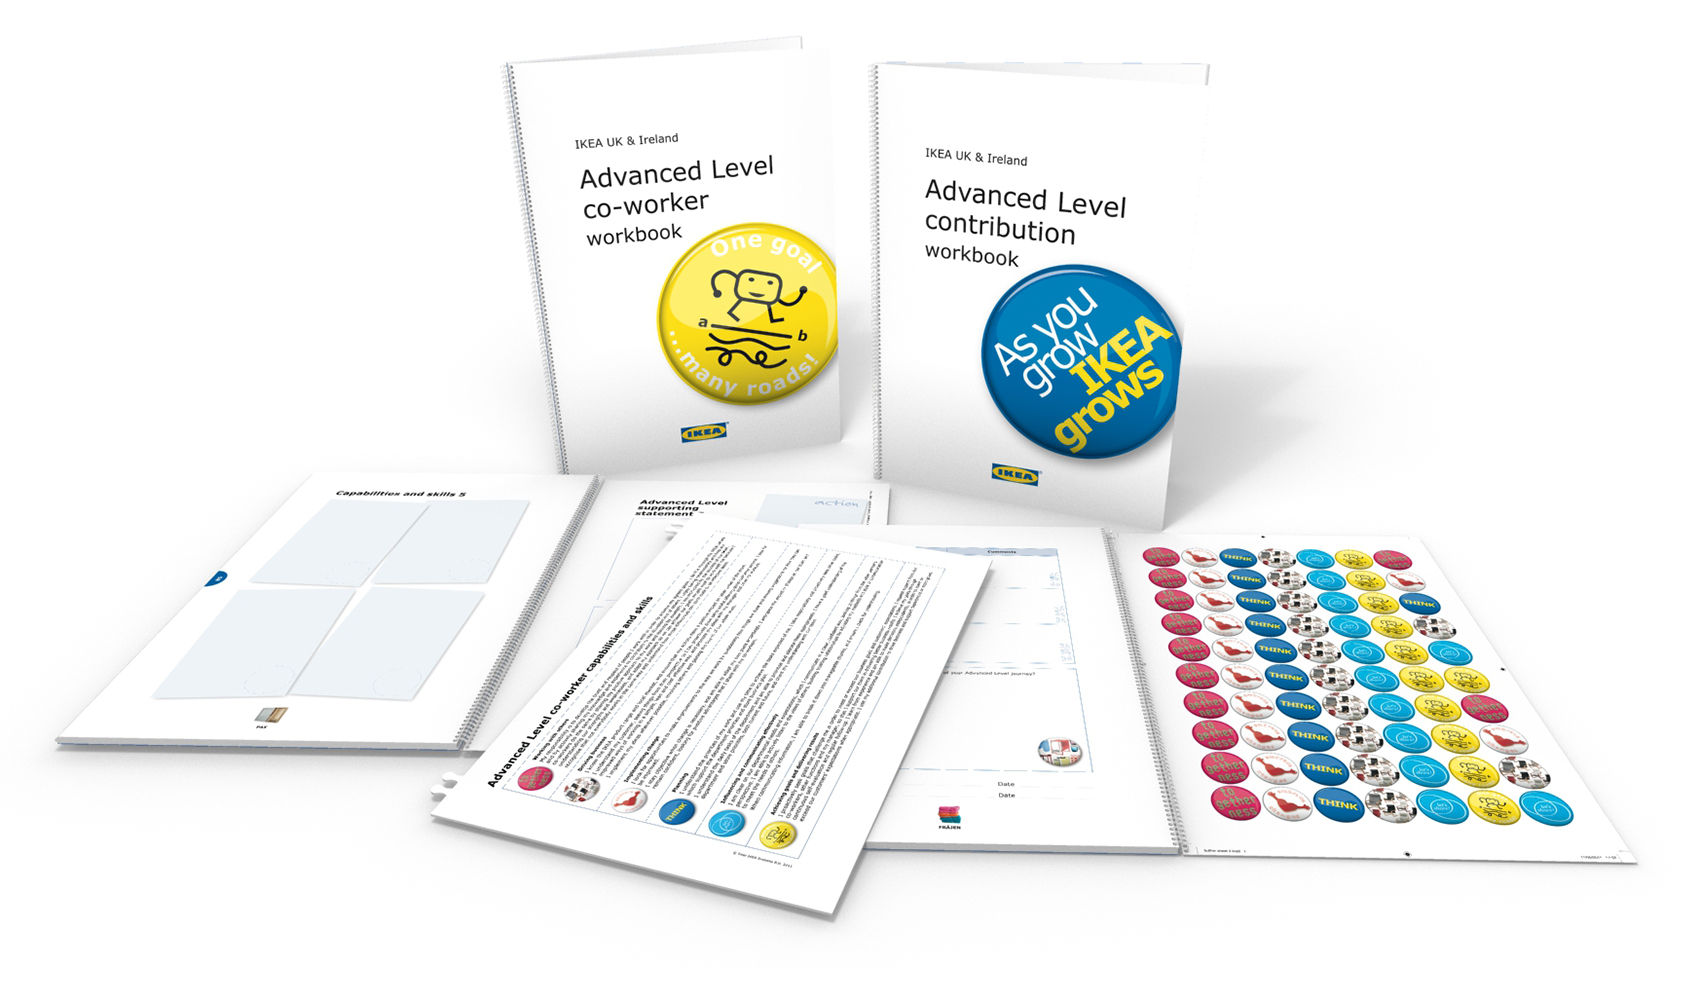 IKEA Advanced Level Contribution and Co-worker Workbooks